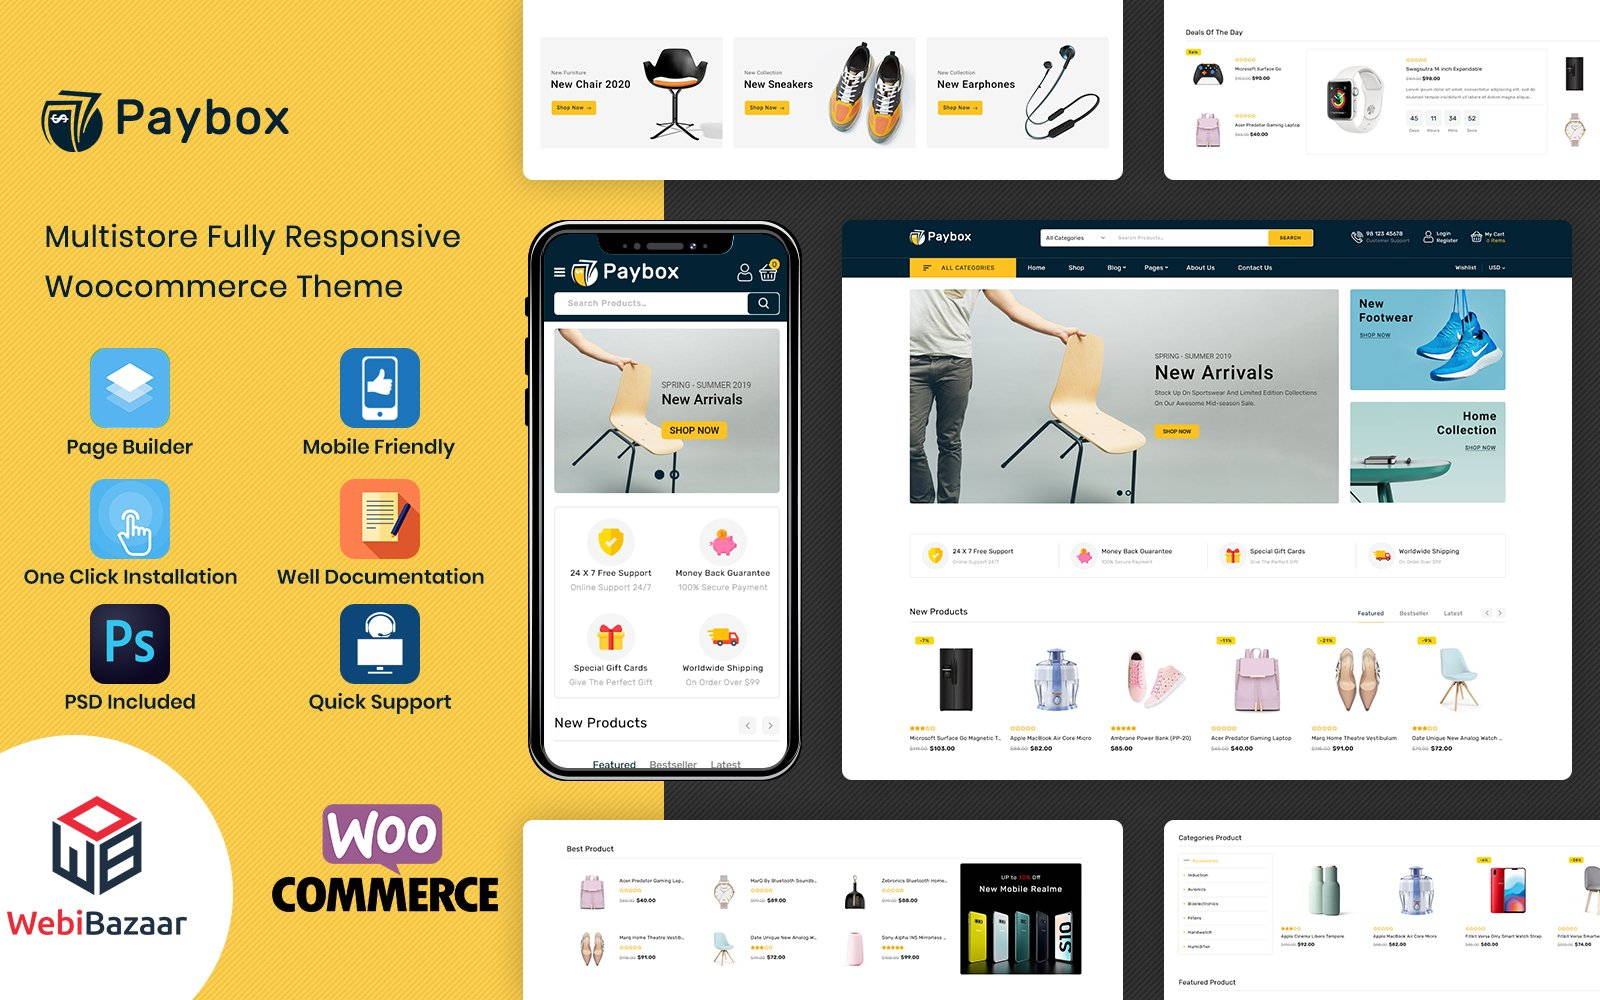 PayBox - Multipurpose Super Market WooCommerce Theme